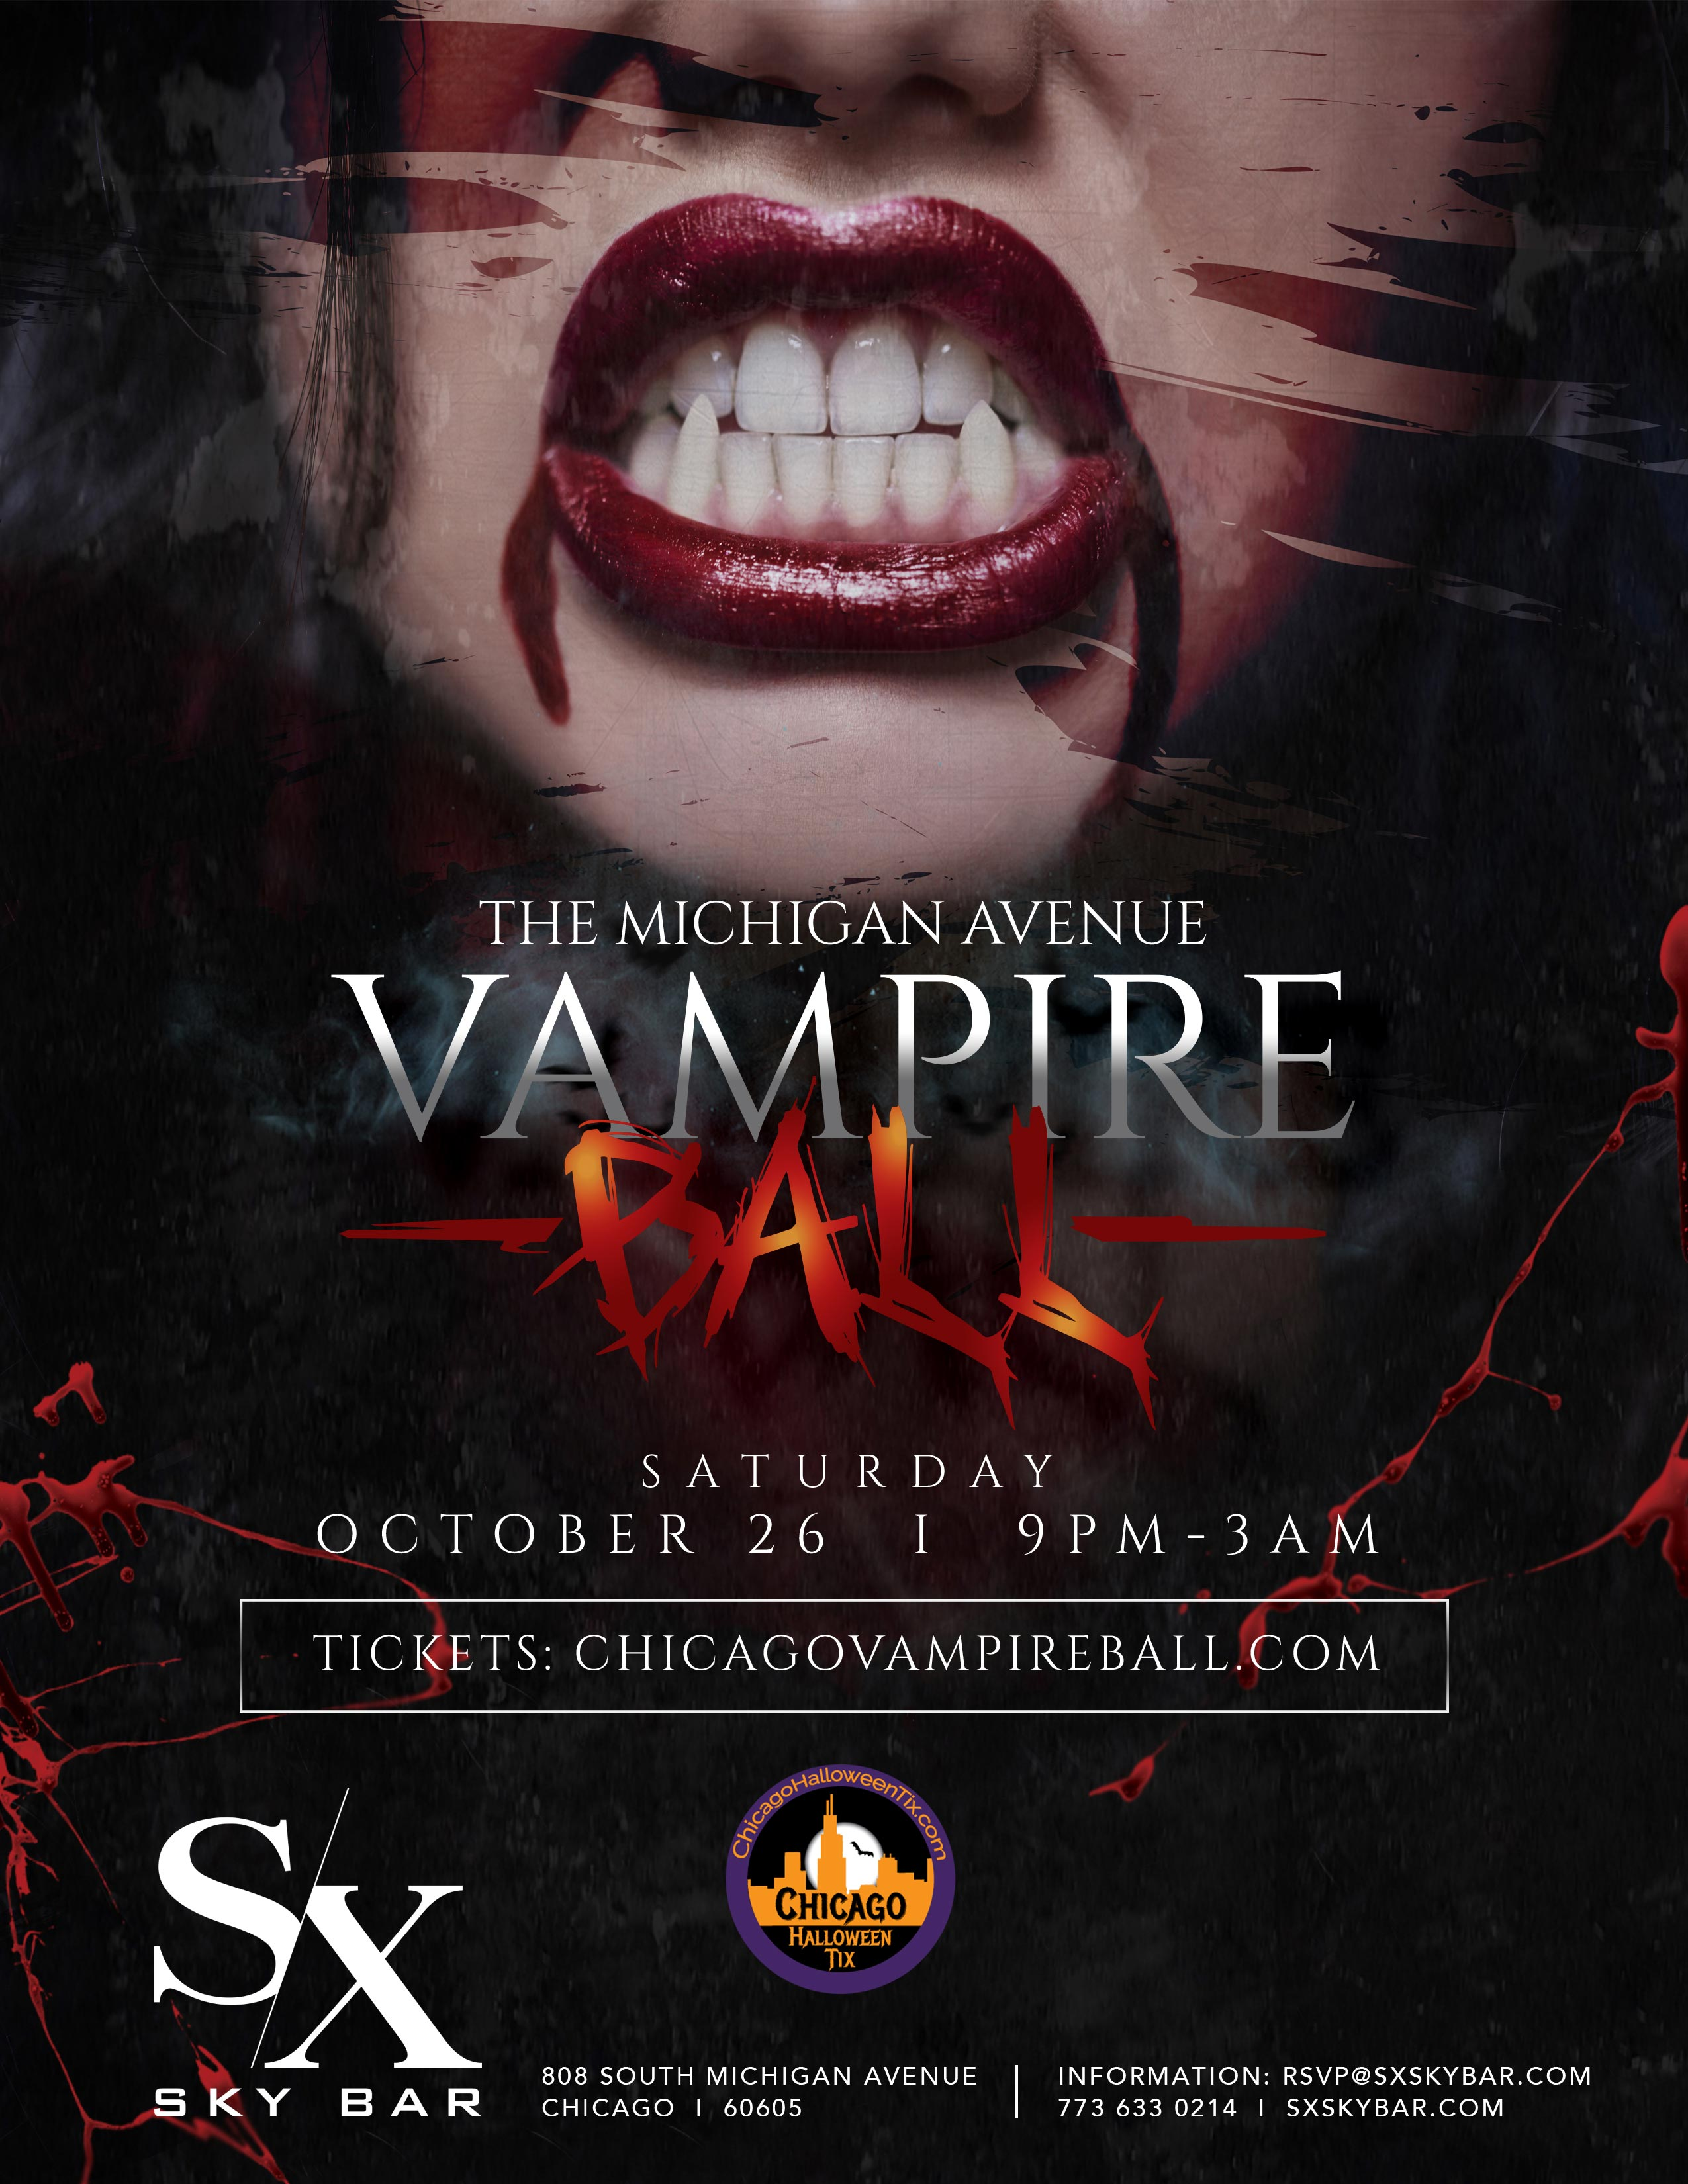 Michigan Avenue Vampire Ball at SX Sky Bar - Come out for a frightful Halloween evening at one of Chicago's hottest new venues, SX Sky Bar, the most original venue in Chicago's Cultural Mile.  Tickets Include Express Entry & Your First Drink Before 11pm!